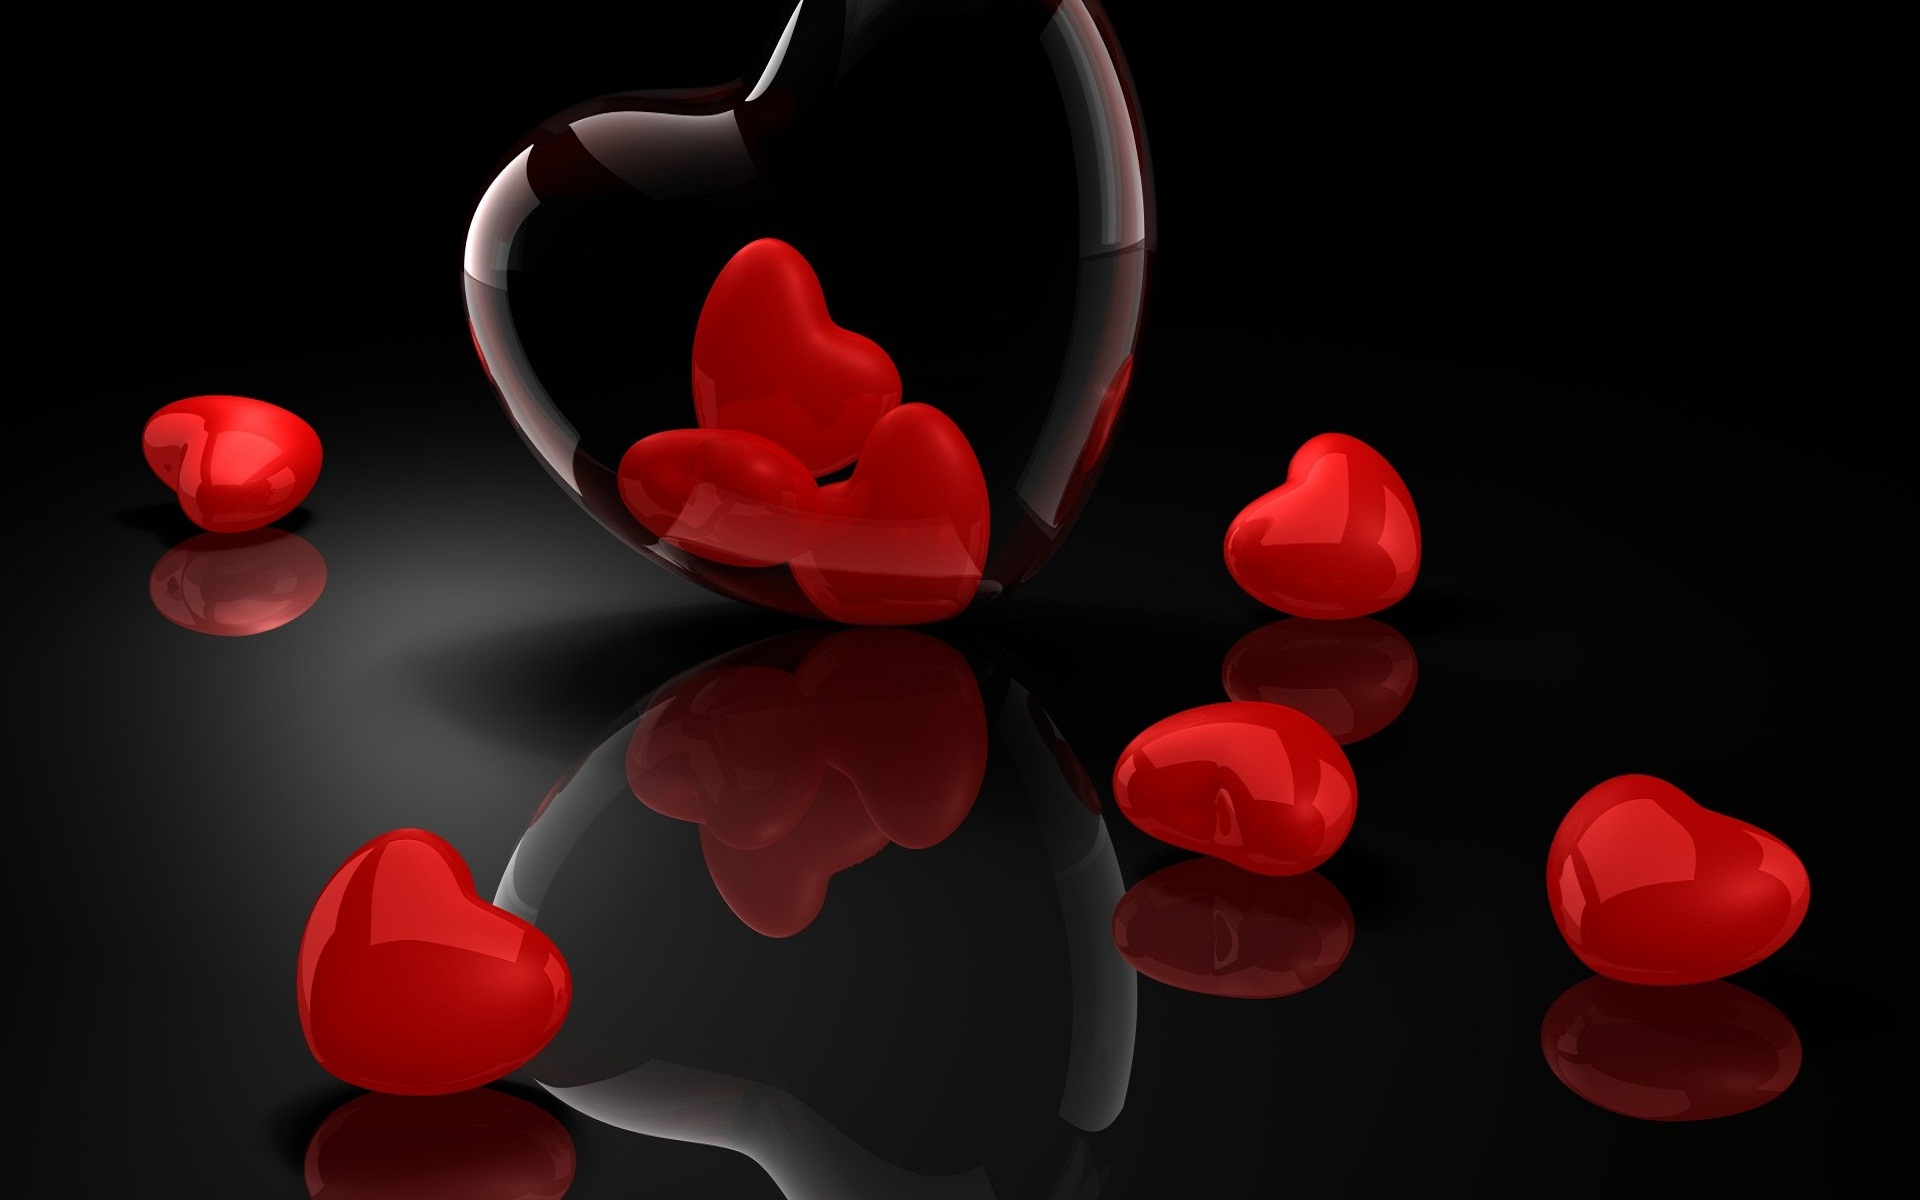 3d Love Live Wallpaper For Mobile : Photo collection Love Hd 3D Wallpapers